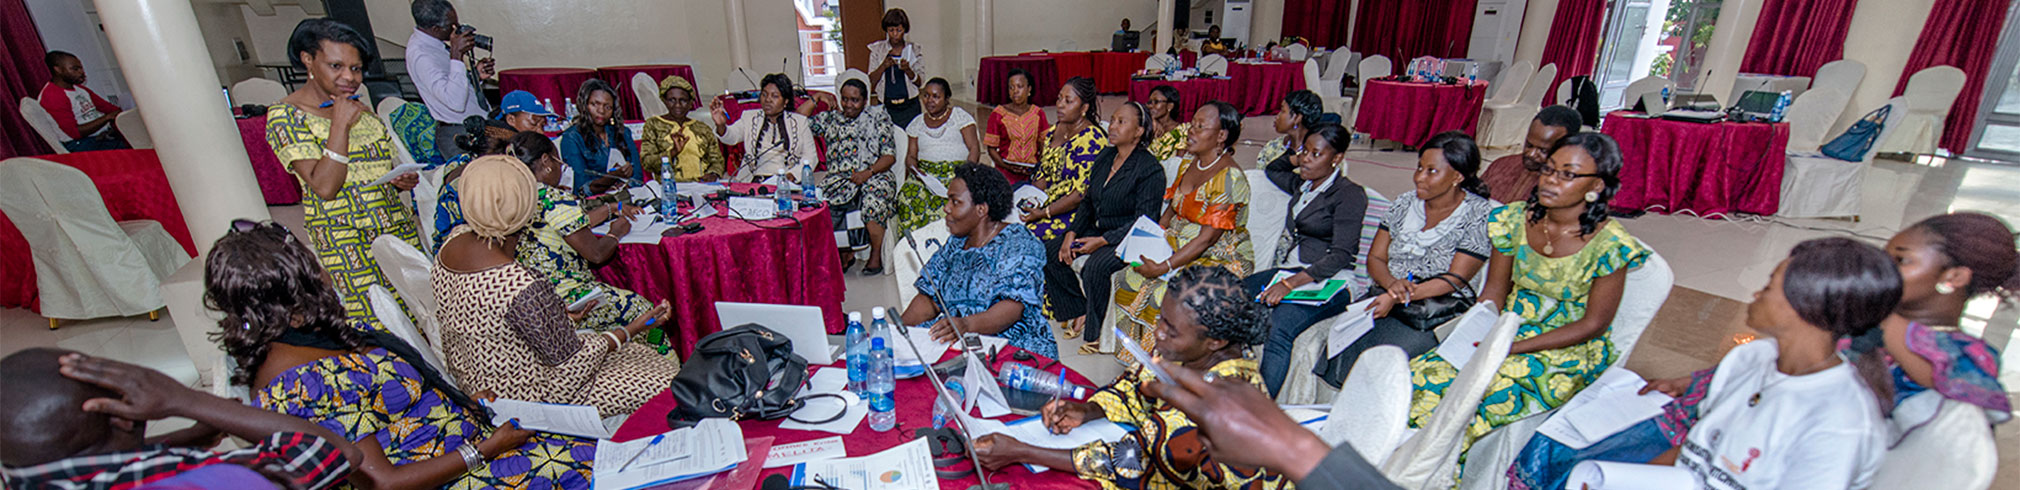 Participants at the convening in Congo in a breakout group discussion